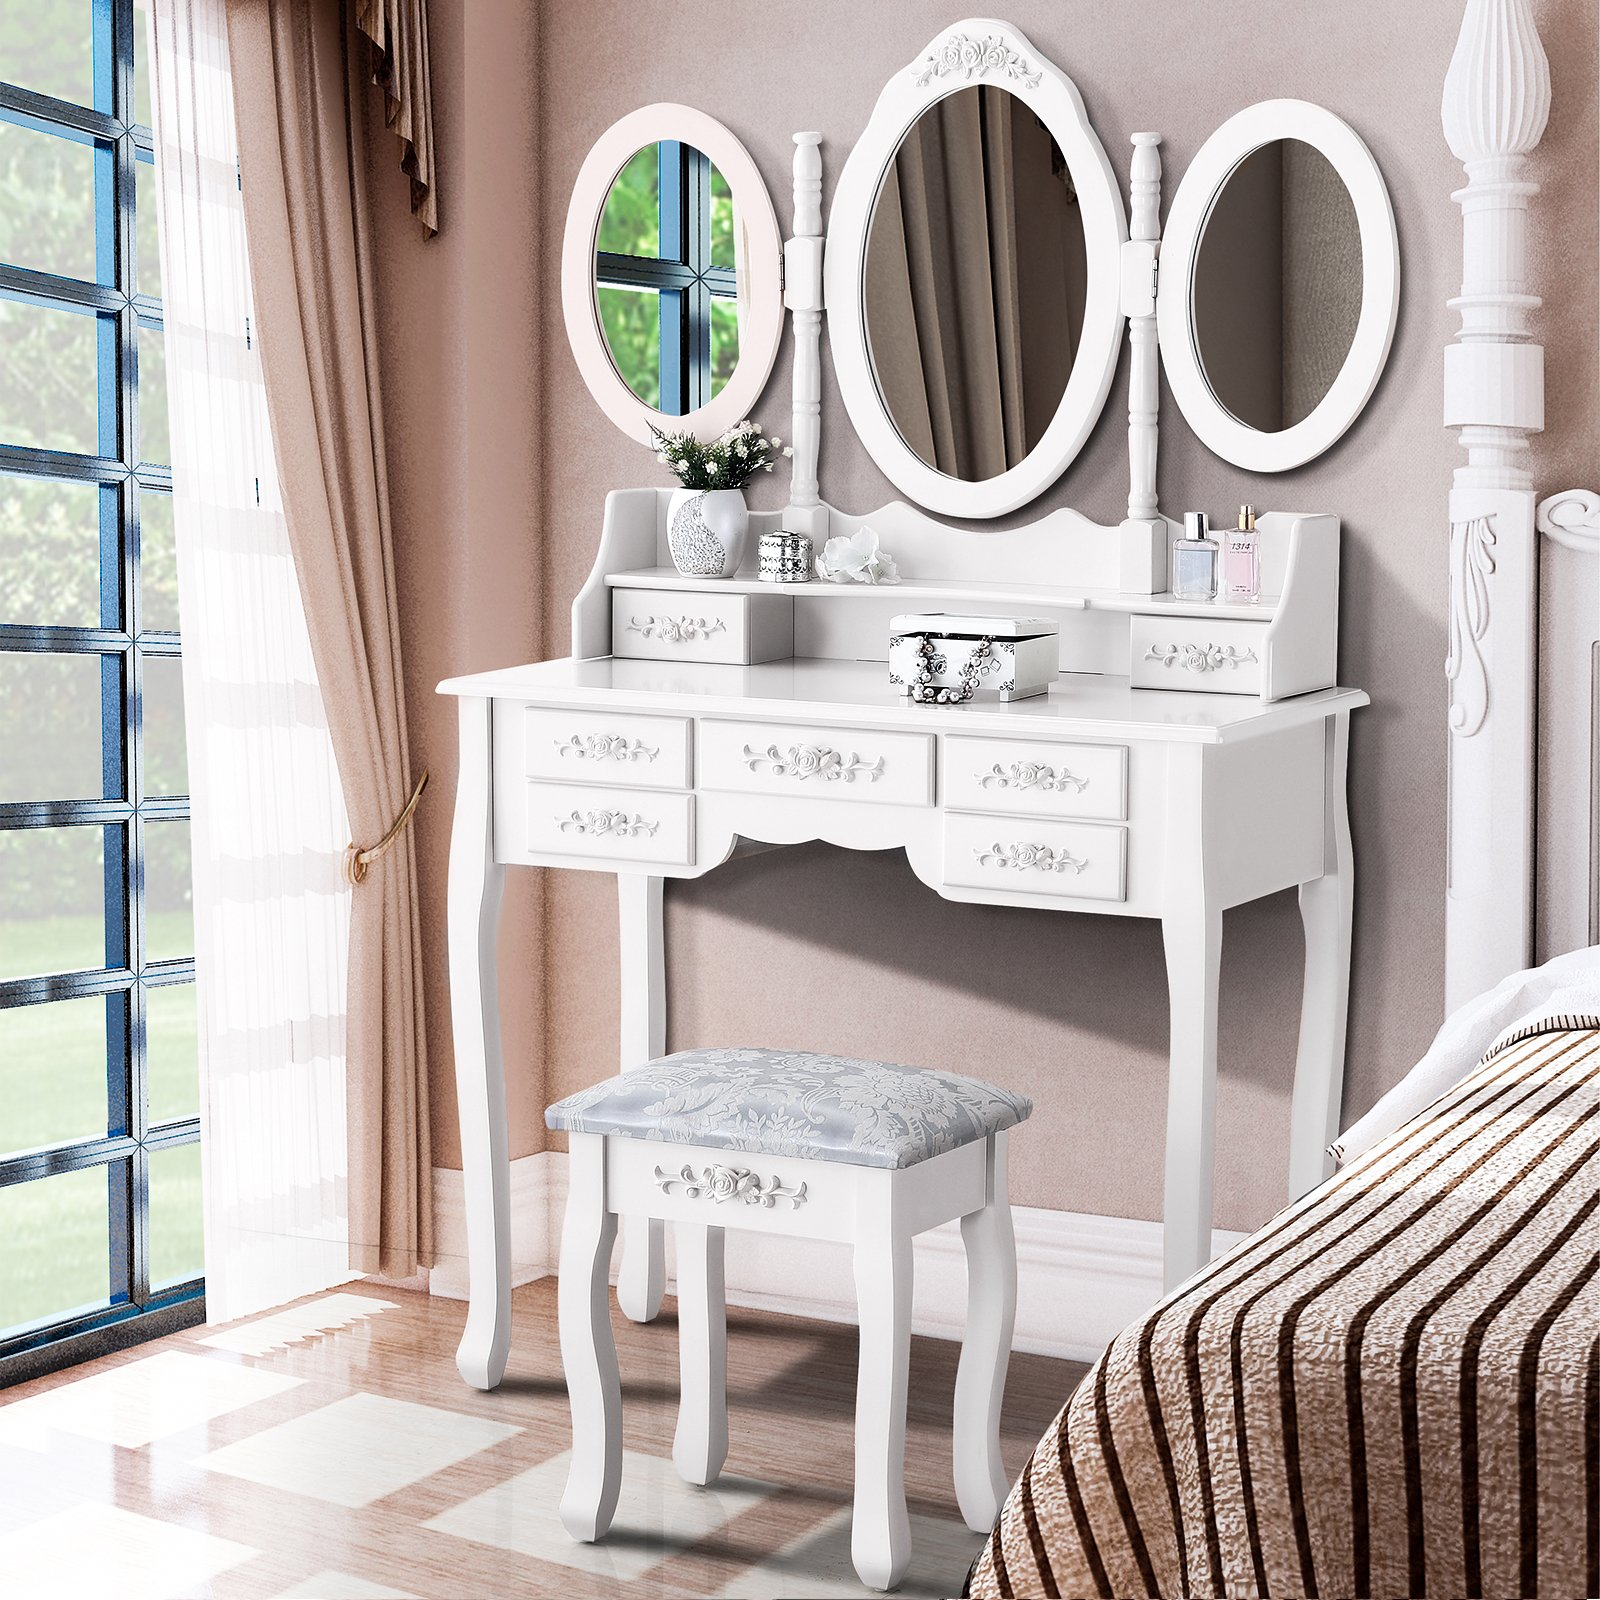 Mecor Vanity Table Set,Wood Dressing Table with Tri-Folding Mirror, Makeup Desk w/Stool&7 Drawers Storage Bedroom Furniture for Girls Women White